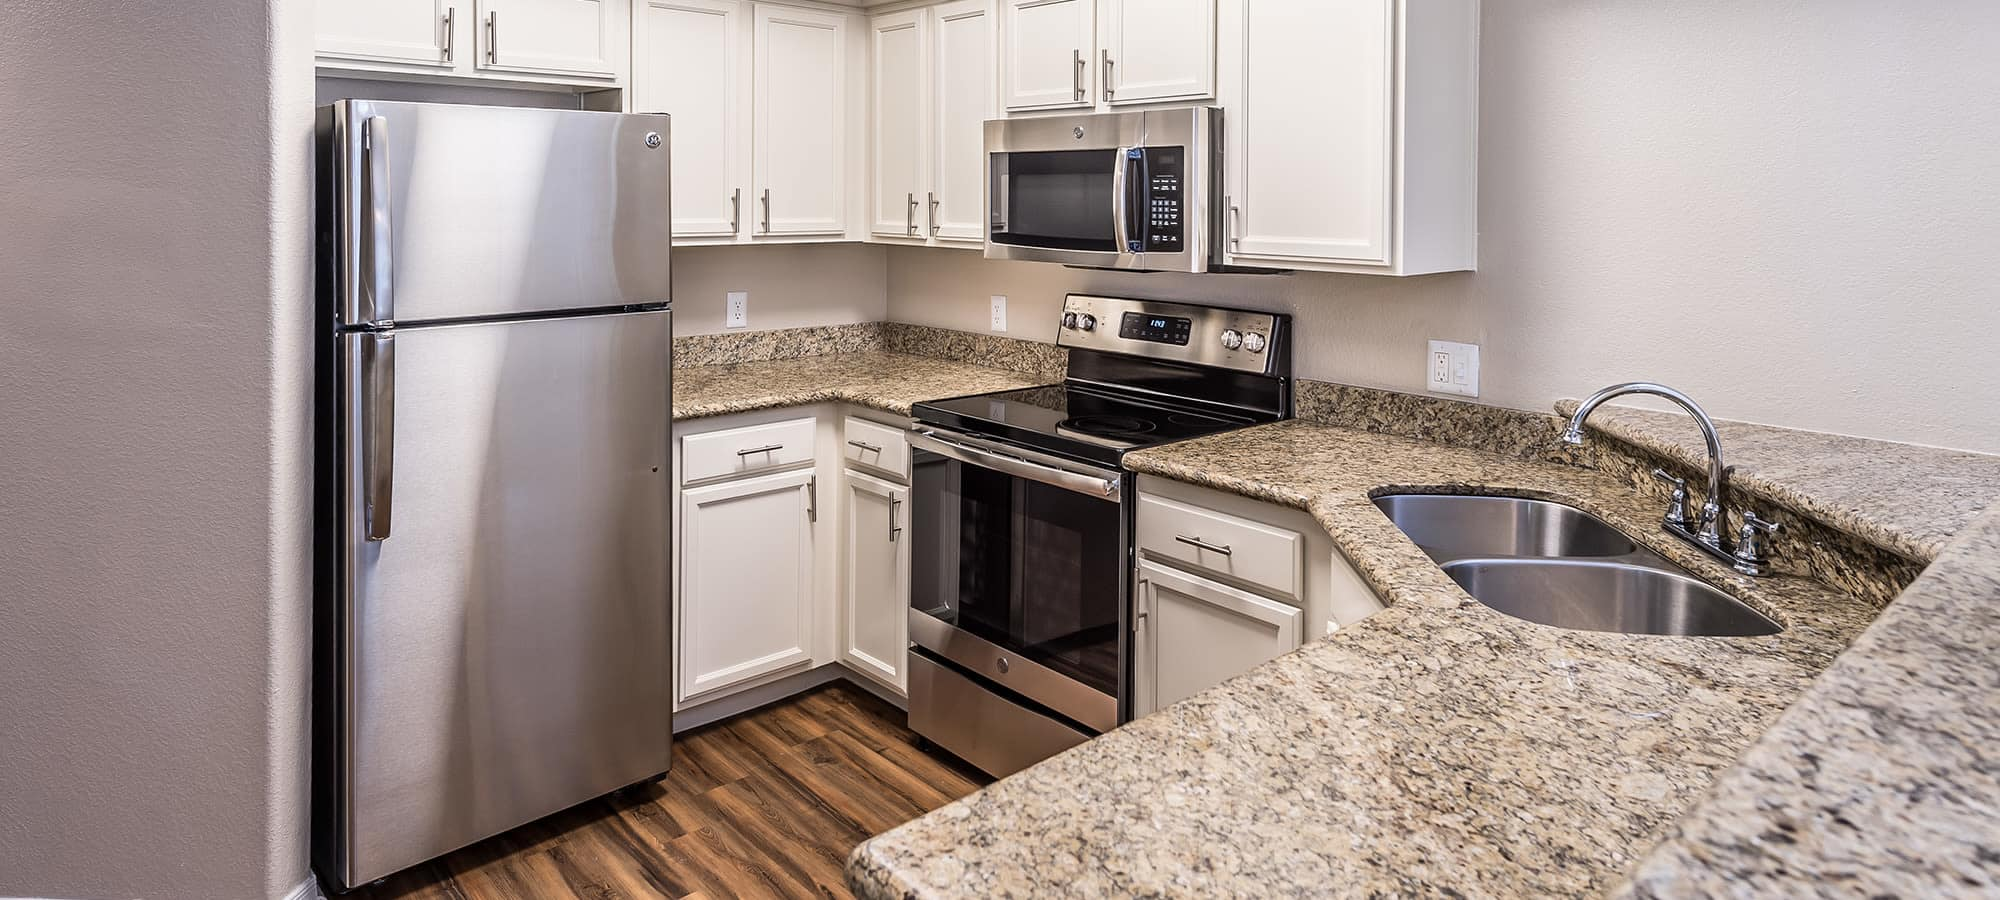 Beautiful kitchen with stainless-steel appliances at San Palmas in Chandler, Arizona